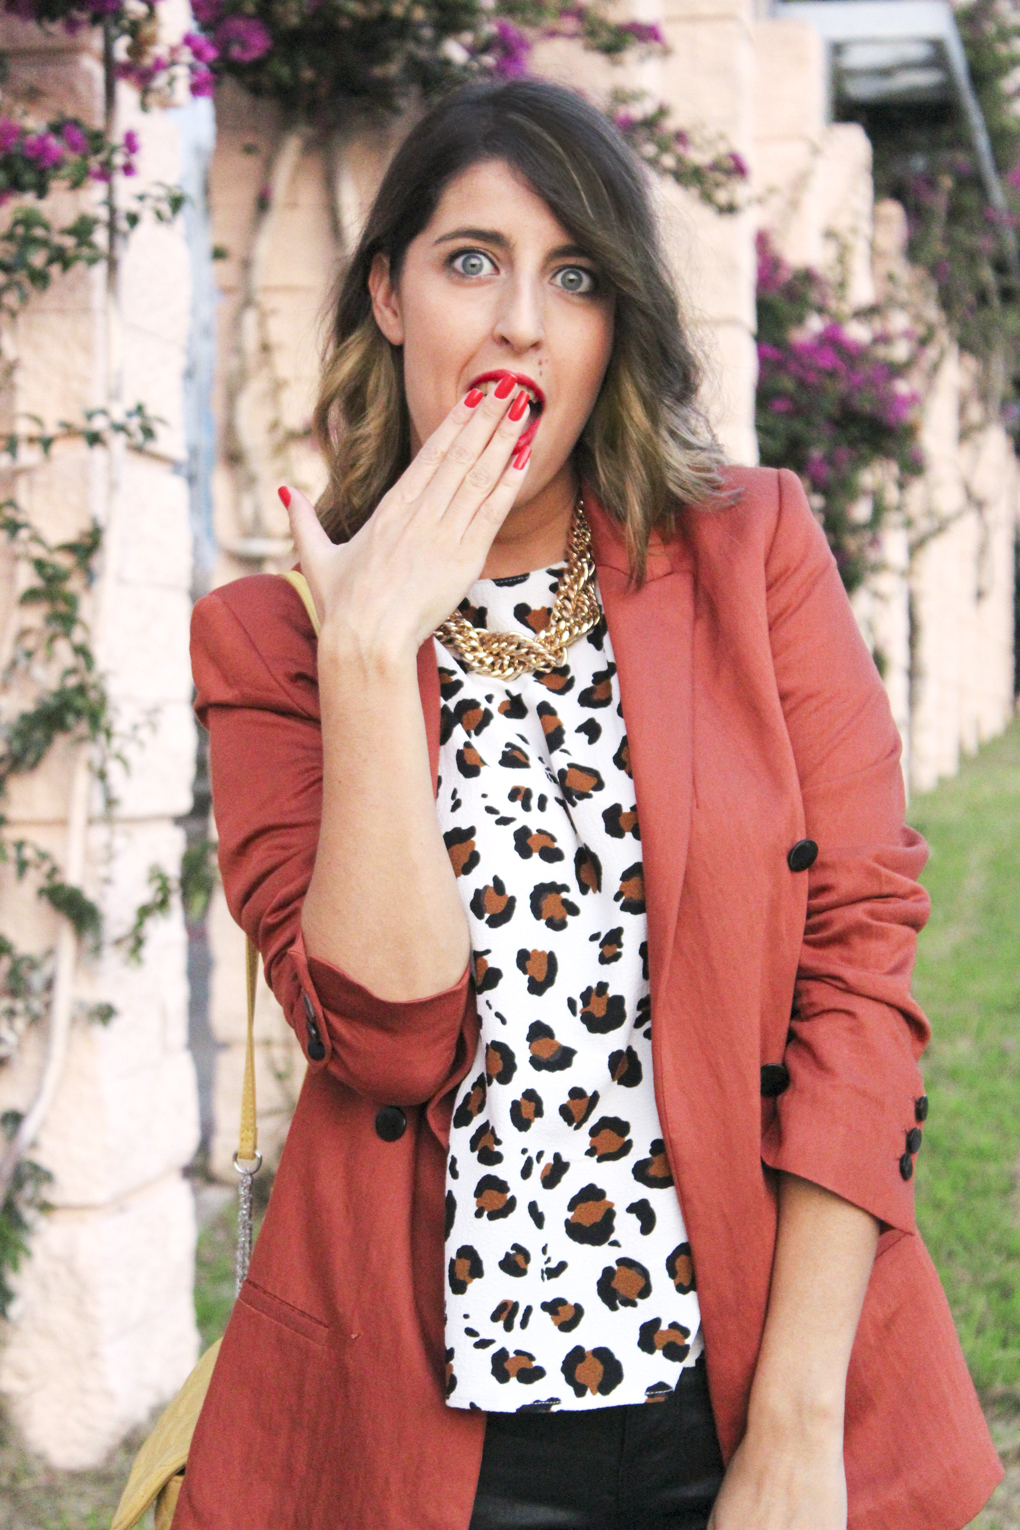 mechas-californianas-blogger-moda-tendencia